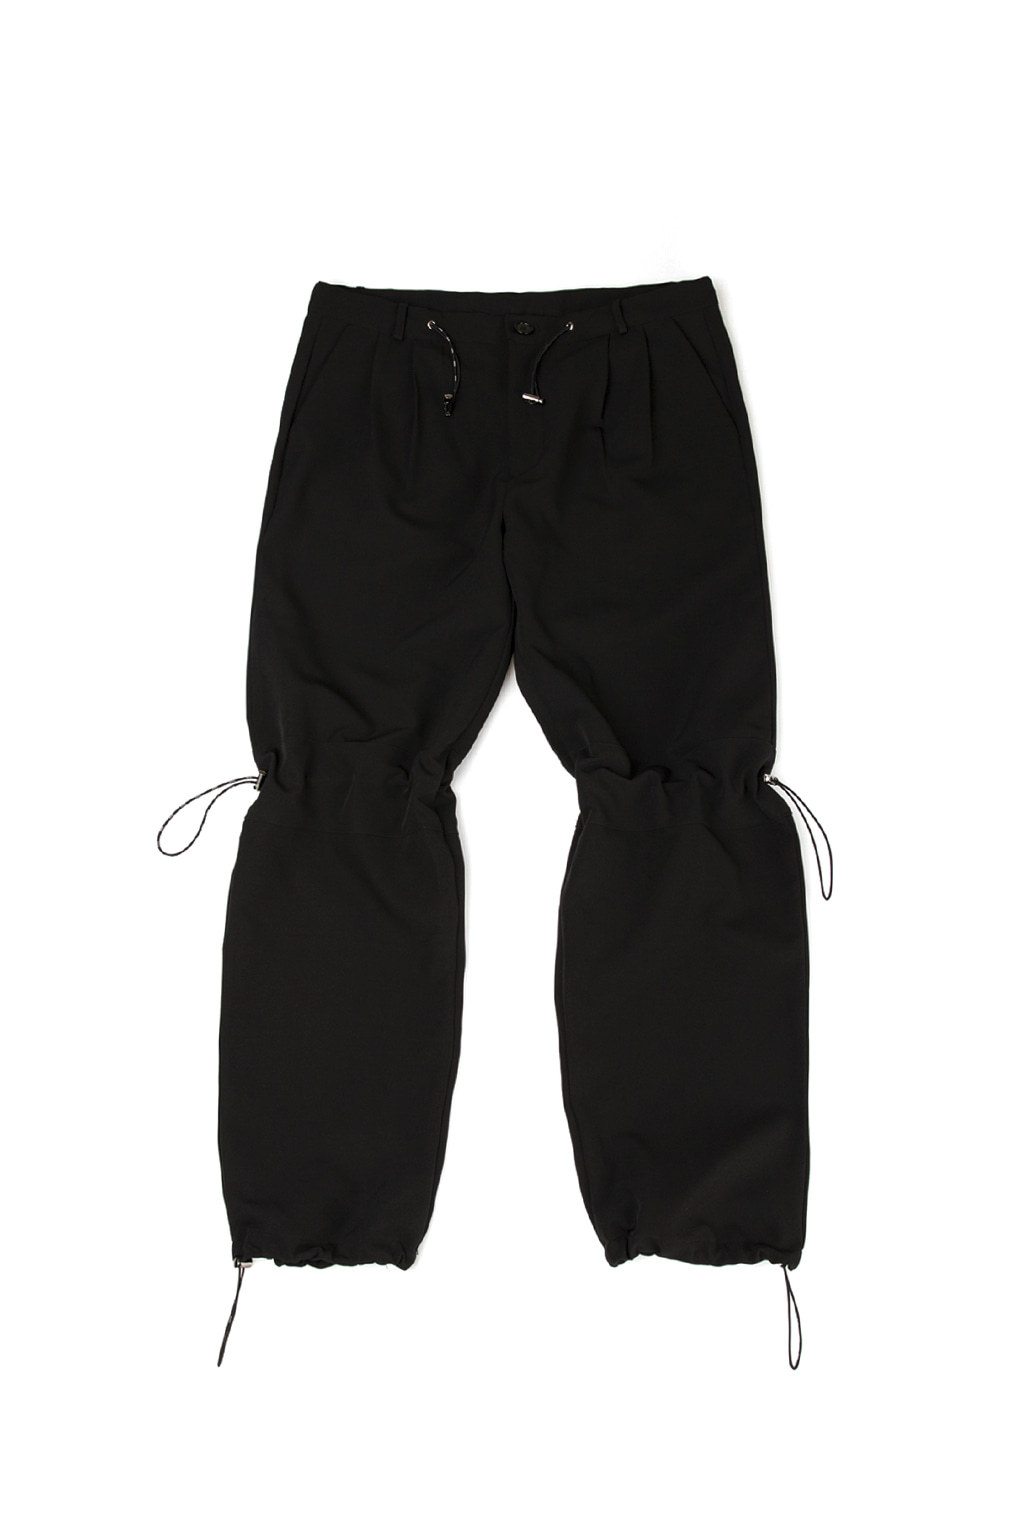 black logo string trousers